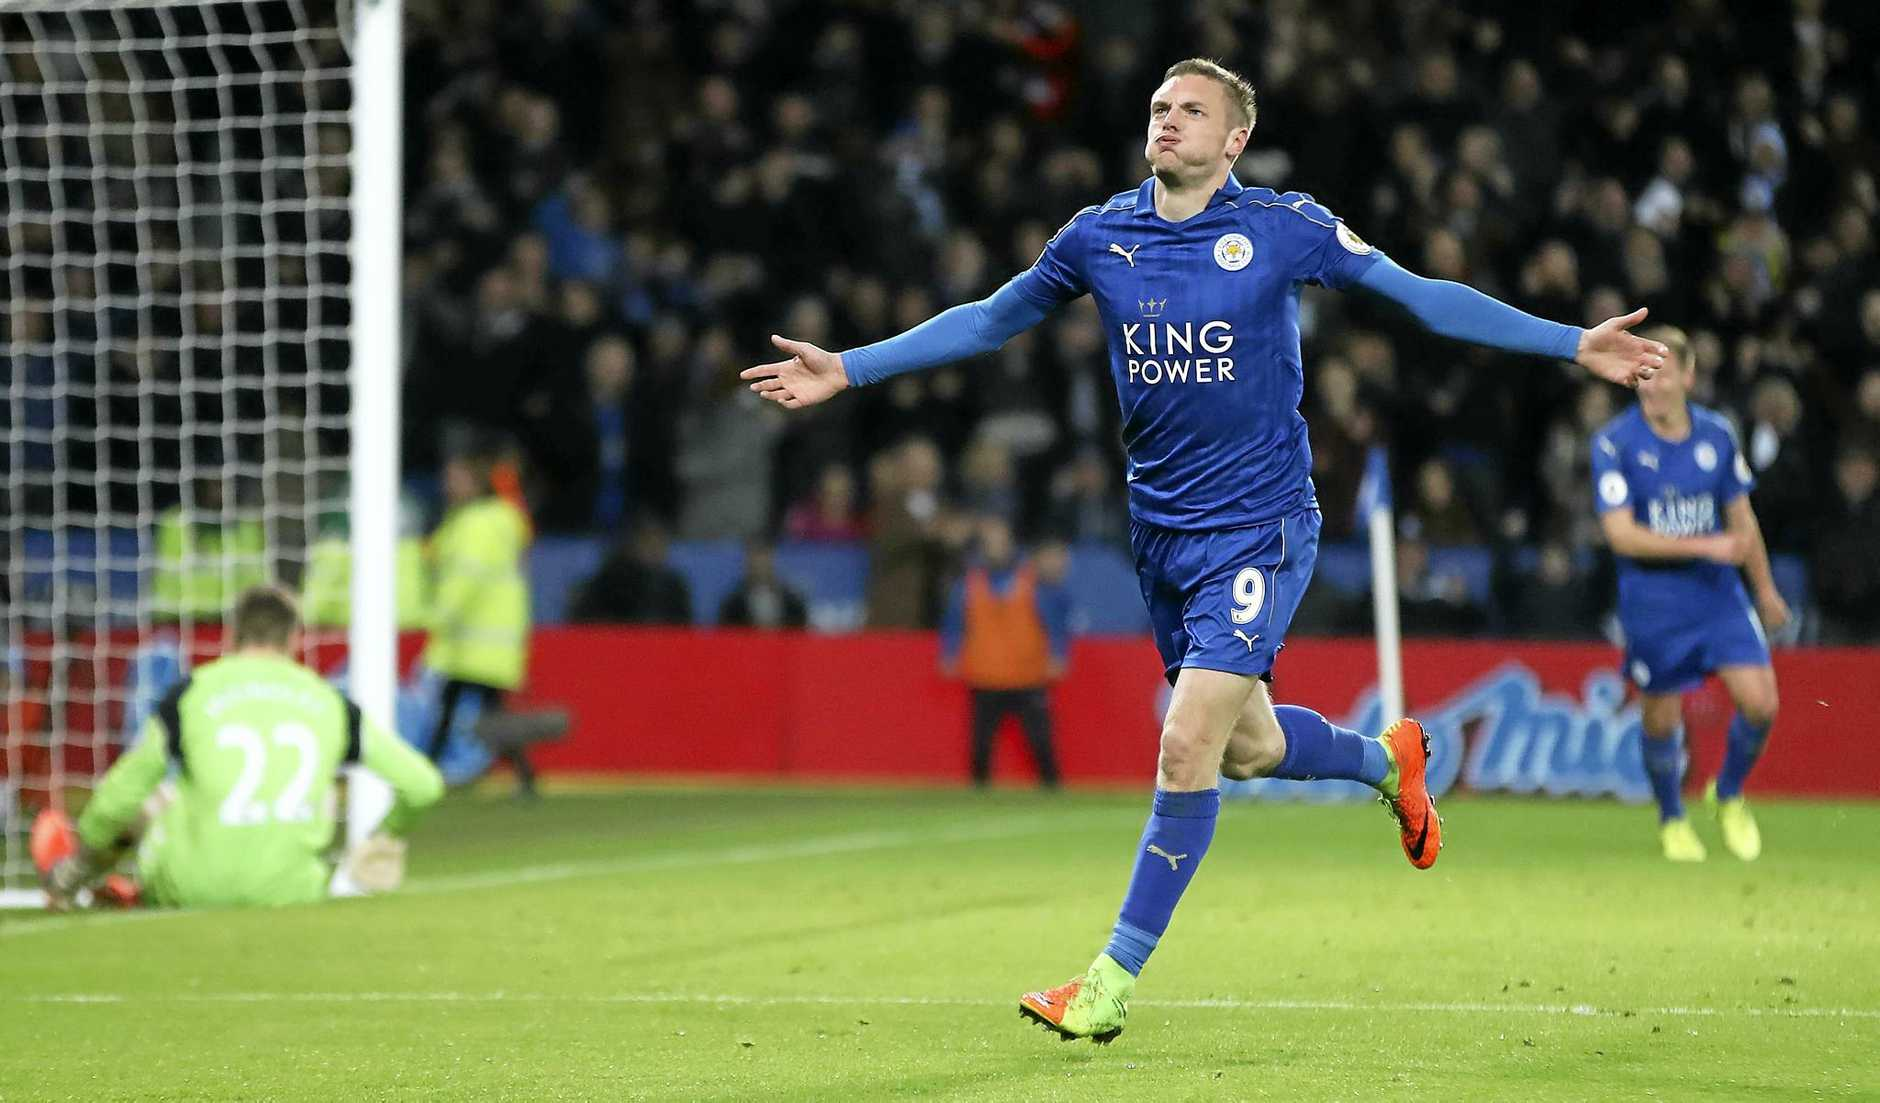 Leicester City's Jamie Vardy celebrates scoring his side's third goal goal during the English Premier League match against Liverpool at the King Power Stadium.